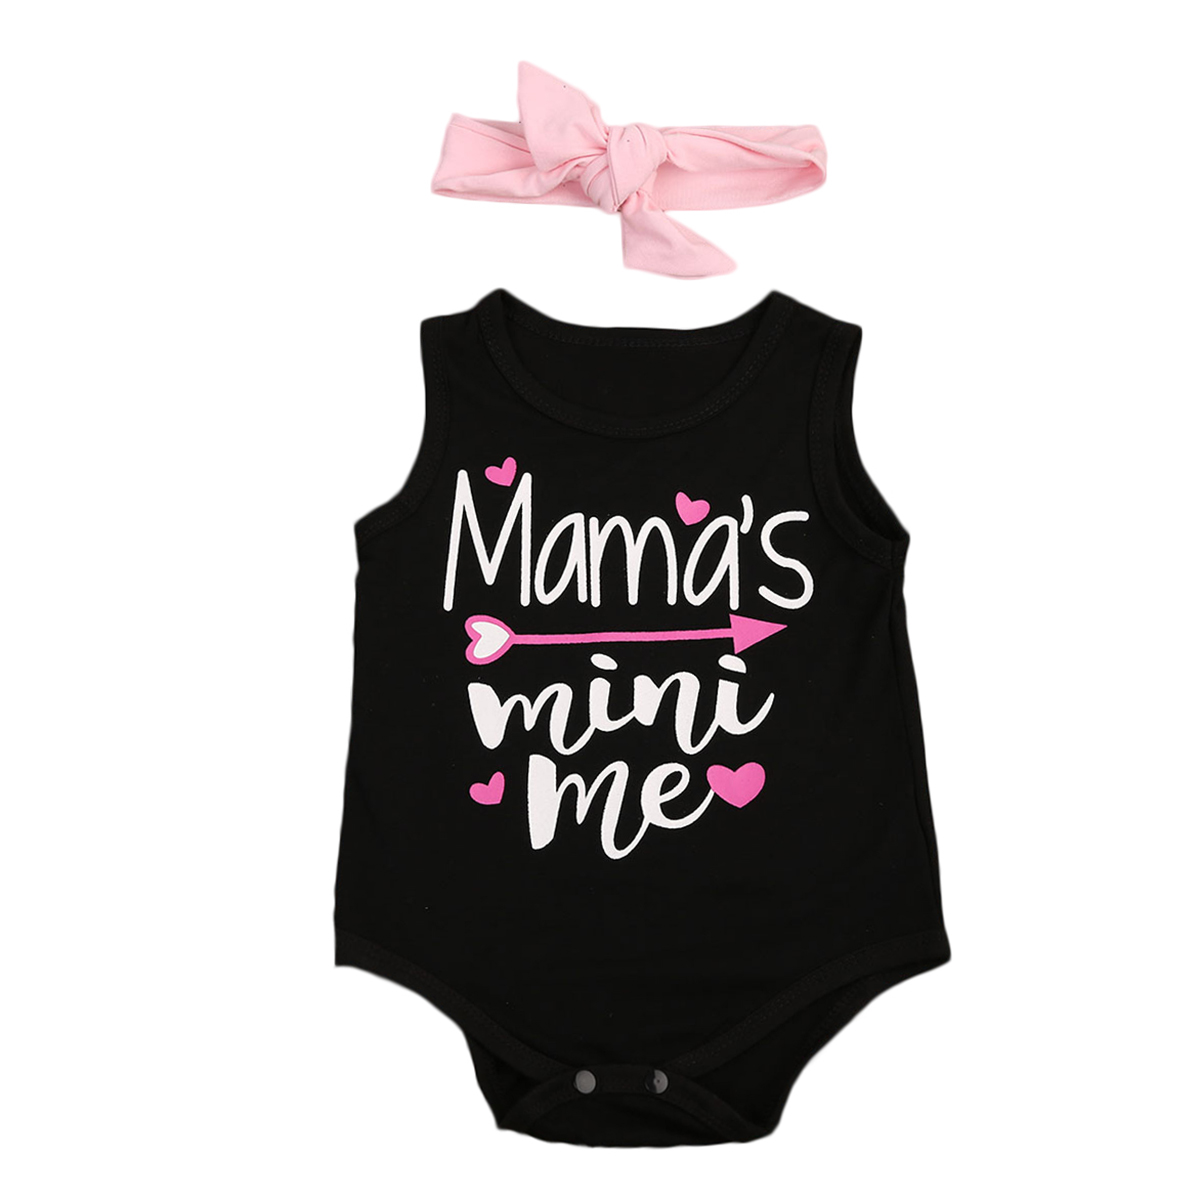 Newborn Infant Baby Girls Rompers Jumpsuit Outfits Summer Sunsuit Clothes